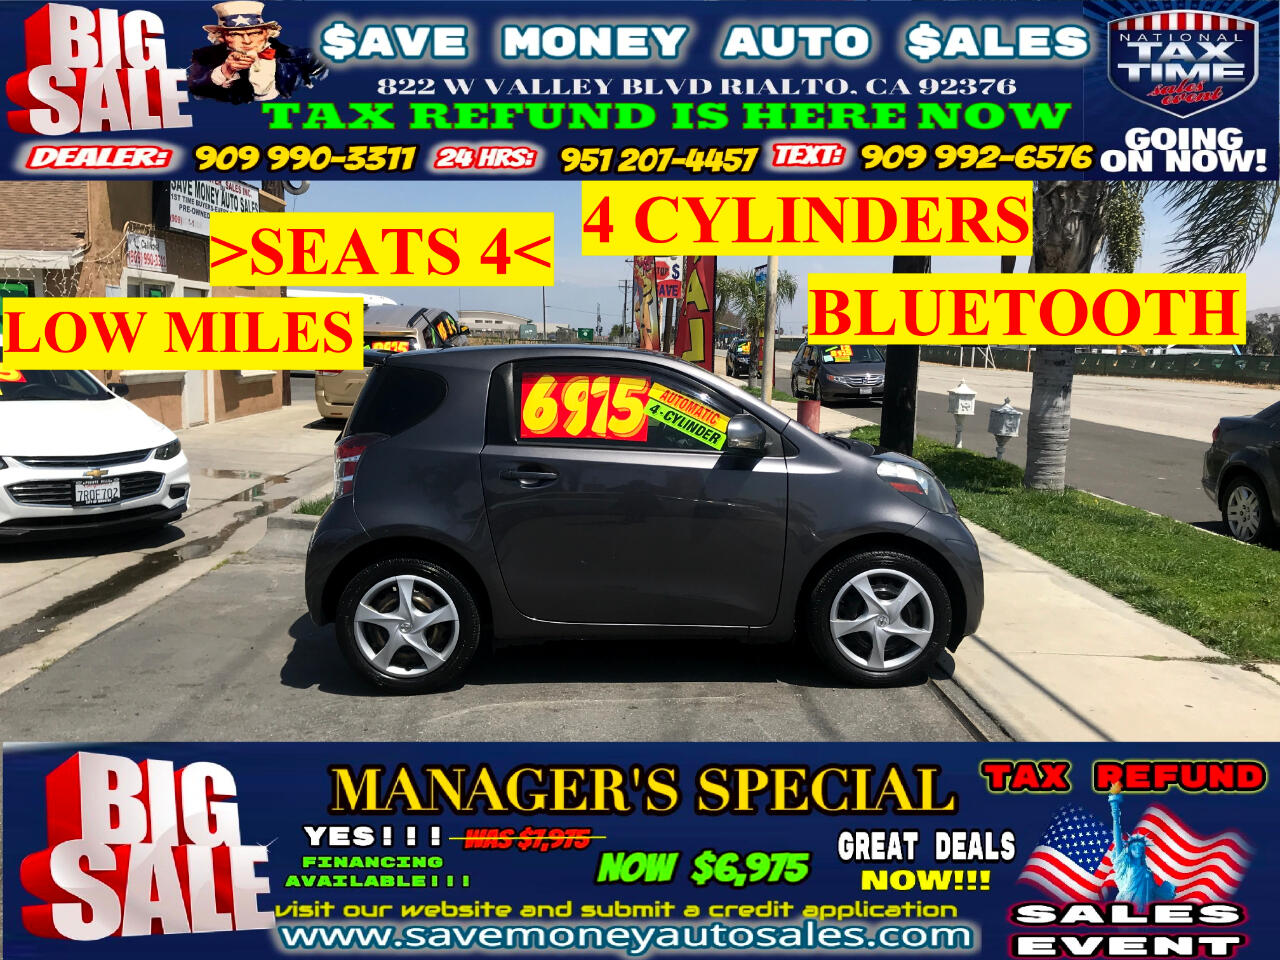 2012 Scion iQ SEATS 4>BLUETOOTH>LOW MILES>4 CYLDS AND MORE!!!!